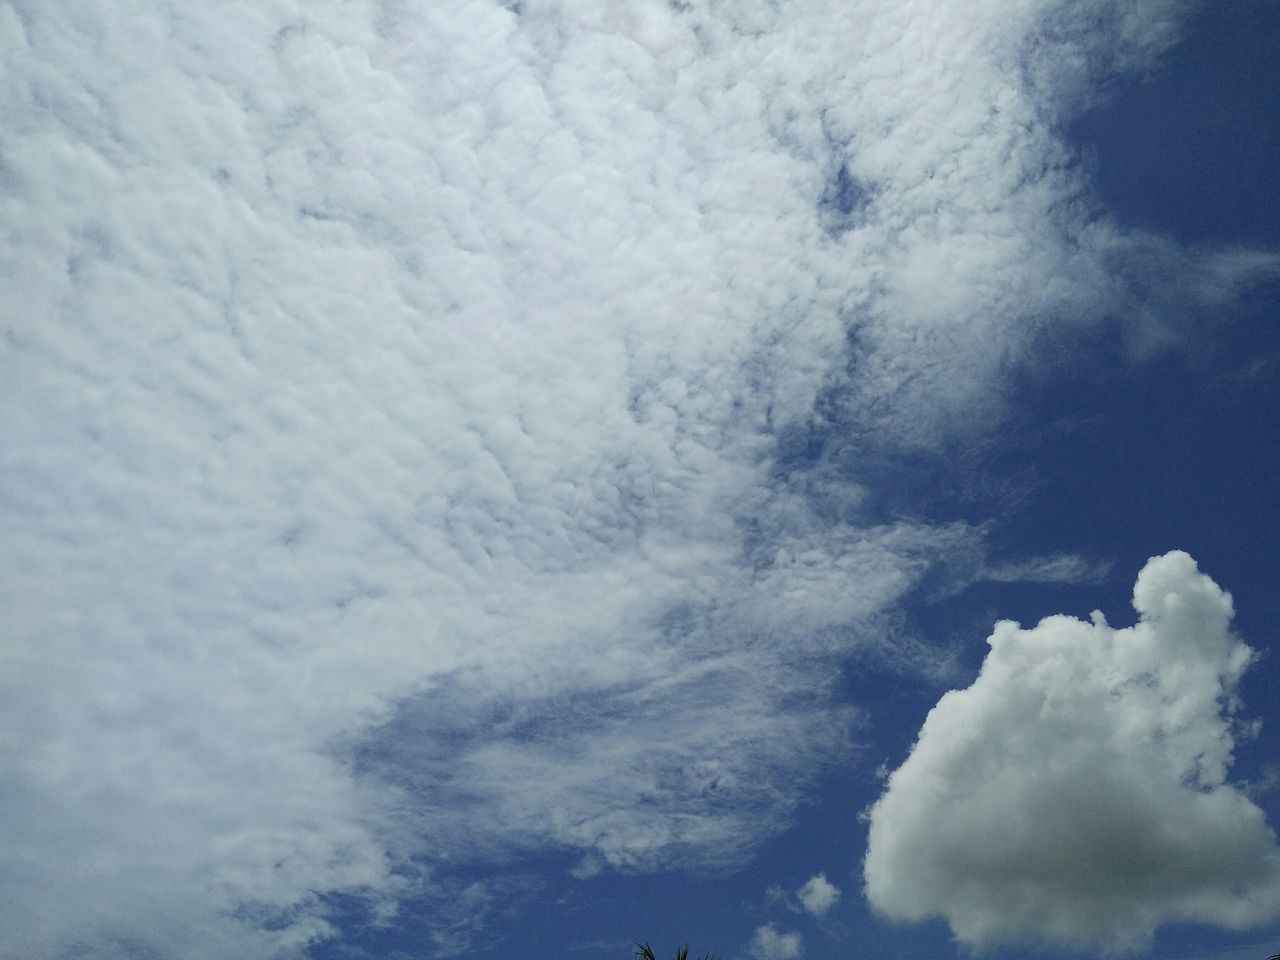 cloud - sky, nature, beauty in nature, backgrounds, sky, cloudscape, sky only, low angle view, scenics, white color, full frame, no people, weather, tranquility, day, outdoors, tranquil scene